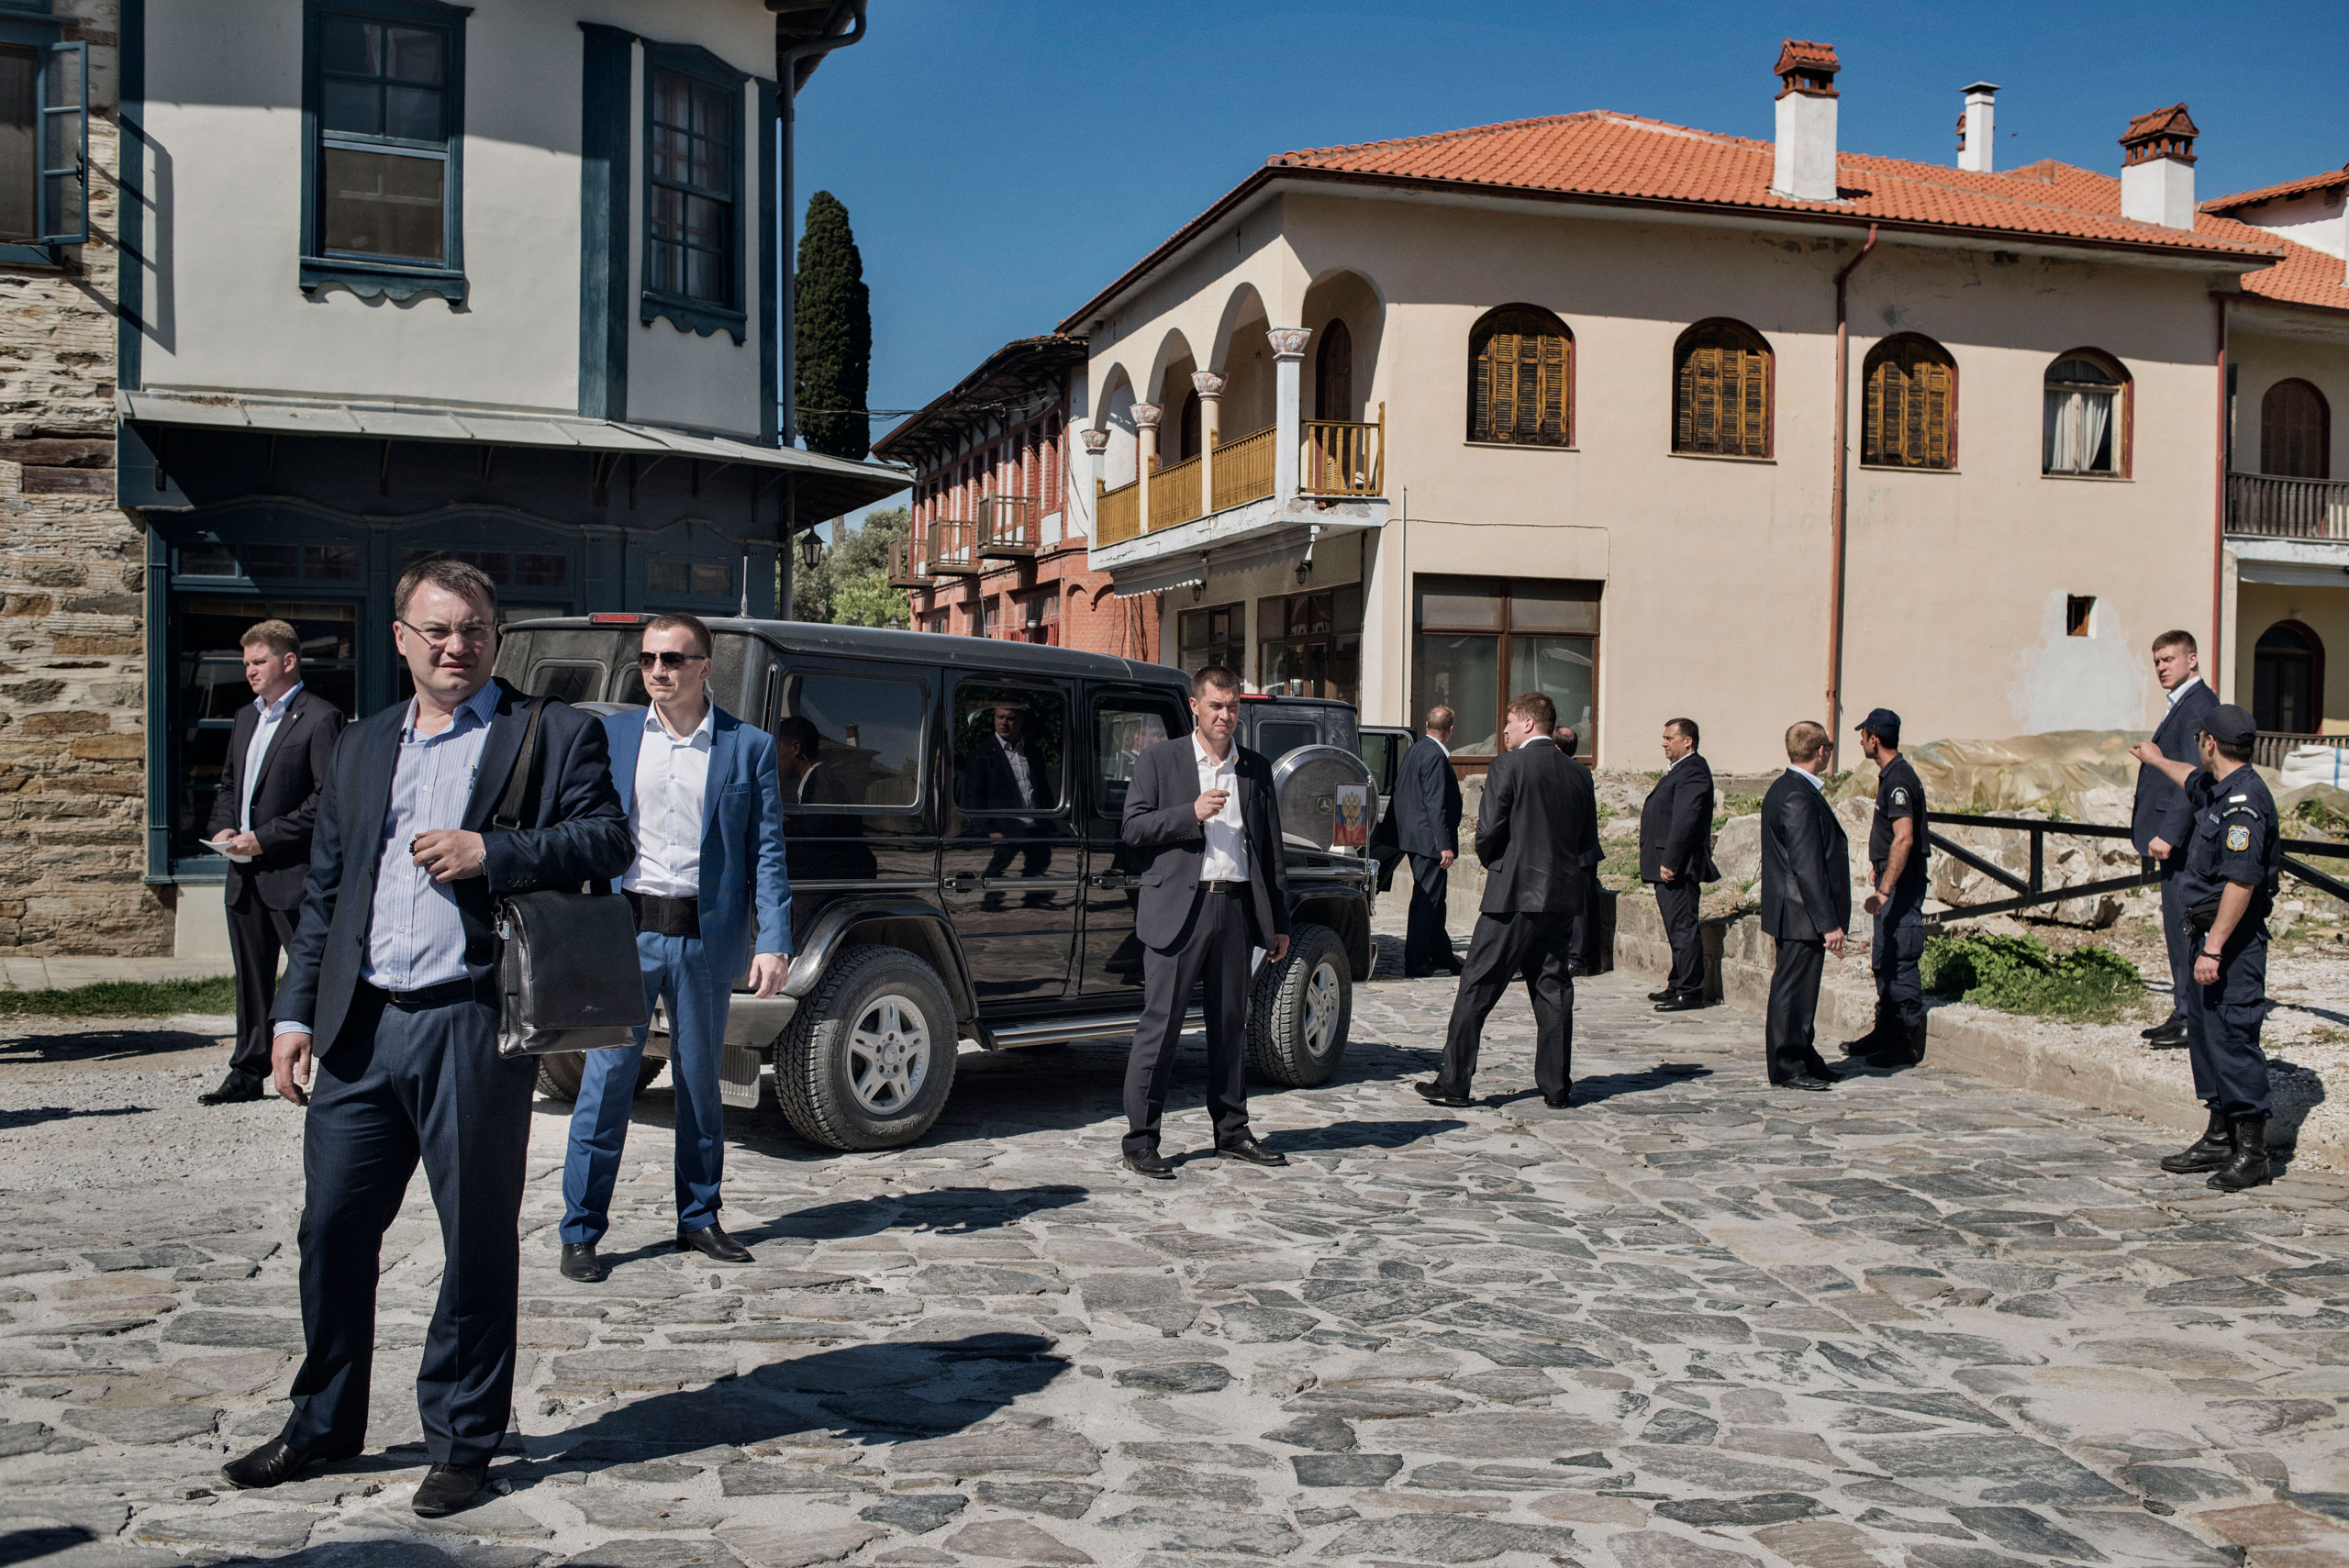 Russian secret service agents and Greek police officers surround a black Mercedes SUV carrying Russian President Vladimir Putin as he arrives in Karyes, the capital of Mount Athos, a self-governing community of Orthodox Christian monks in northern Greece, May 28, 2016.